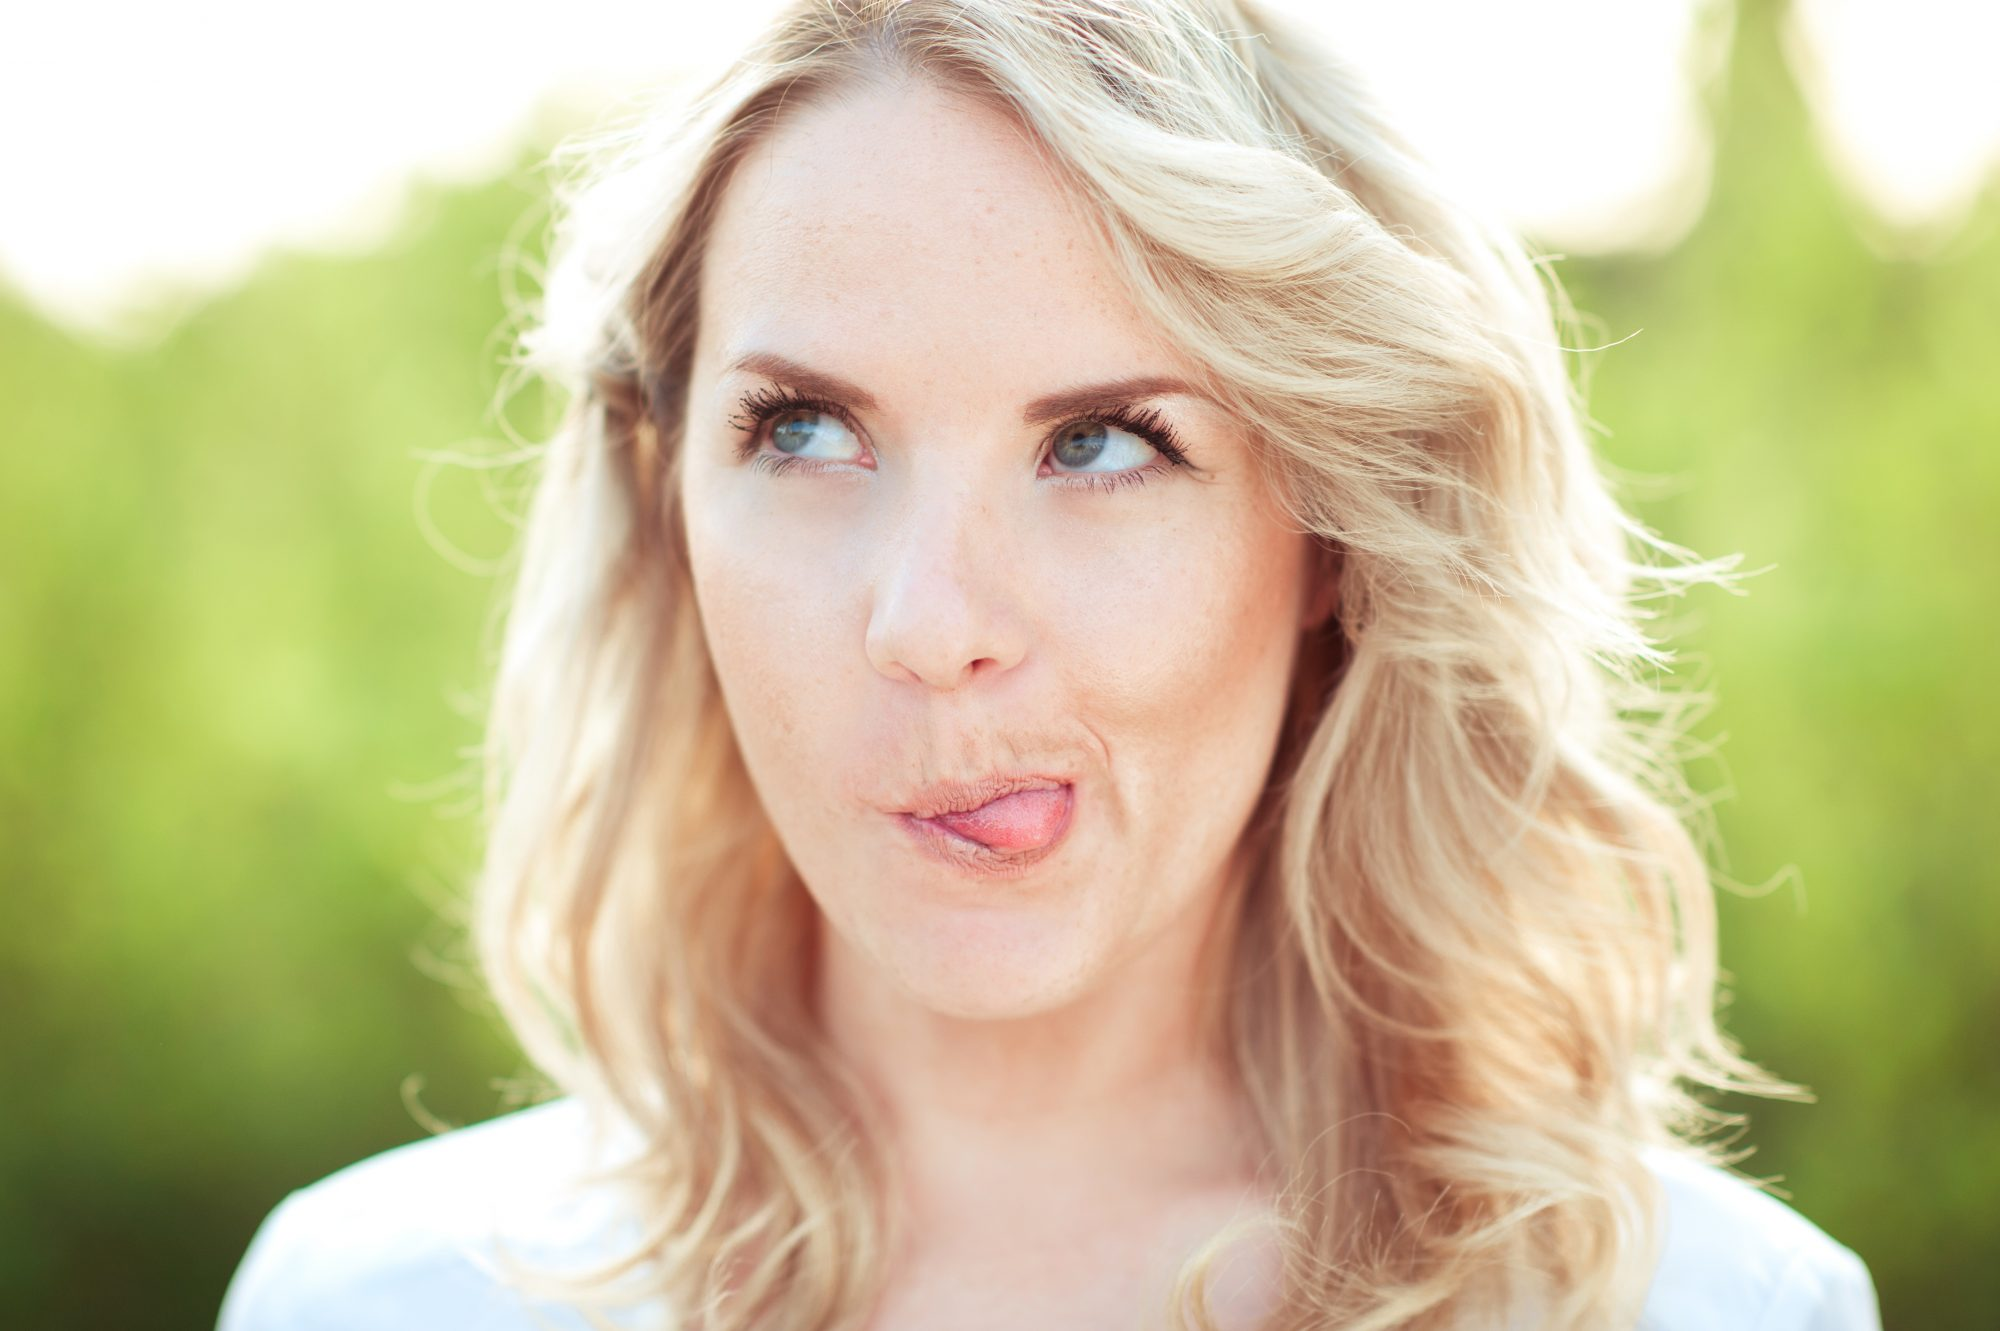 Blonde Woman Making Funny Face